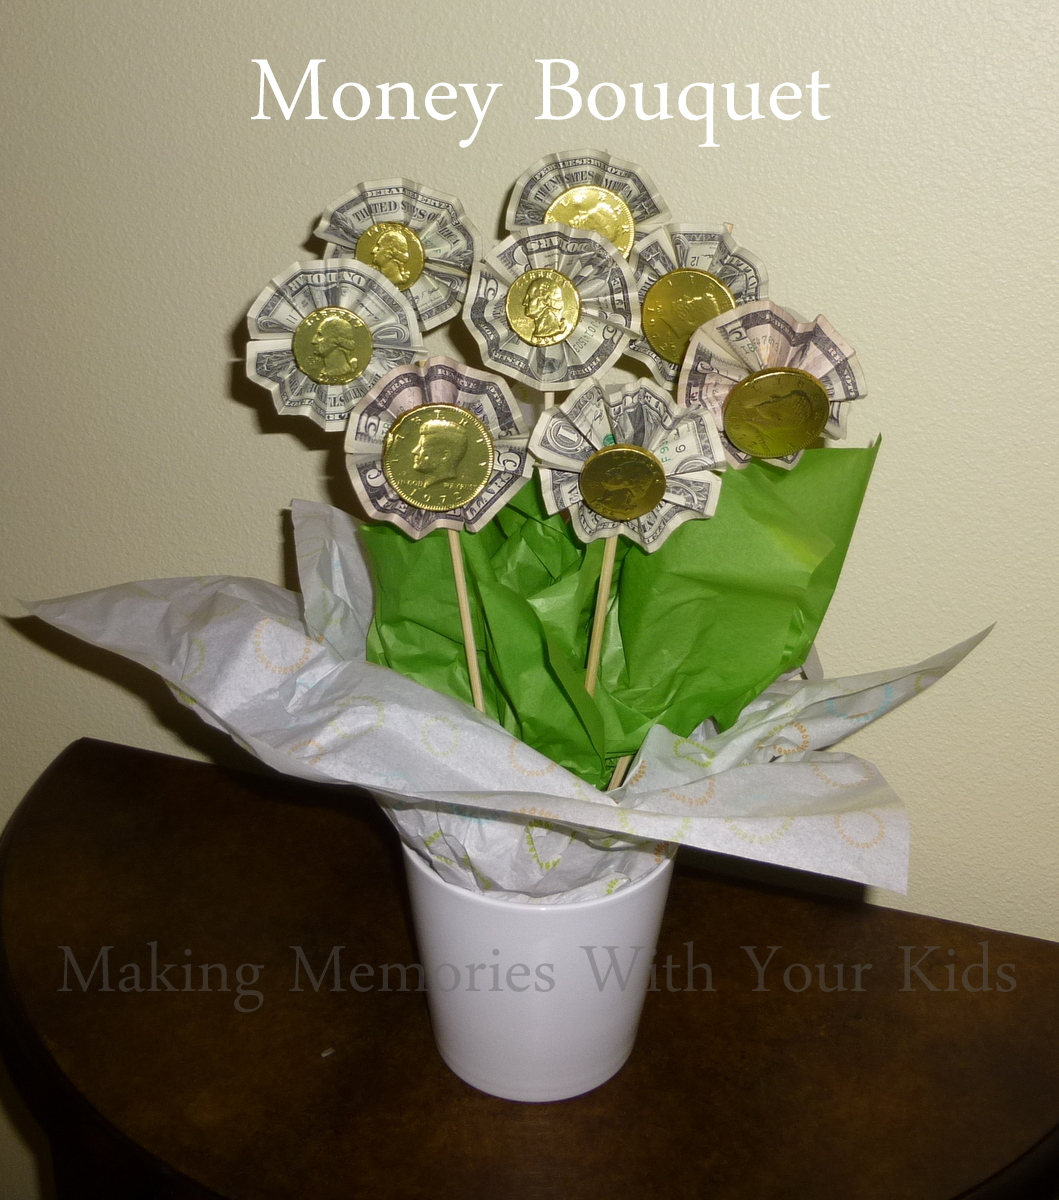 Money bouquet making memories with your kids we needed another birthday idea for one of my daughters friends my daughter wanted to make another candy bouquet because it was such a huge hit izmirmasajfo Choice Image